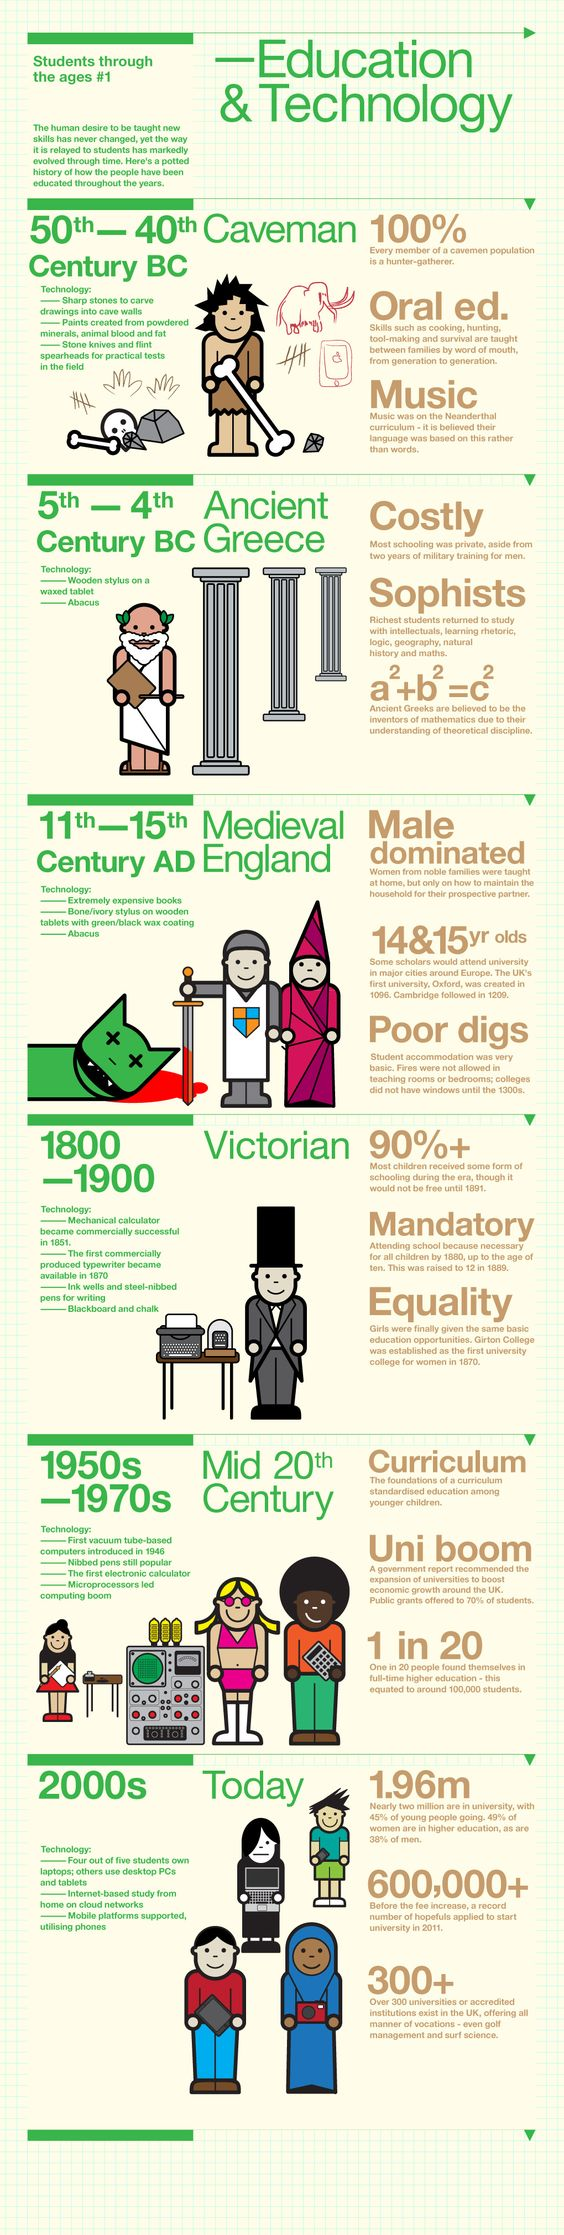 History of Education & Technology